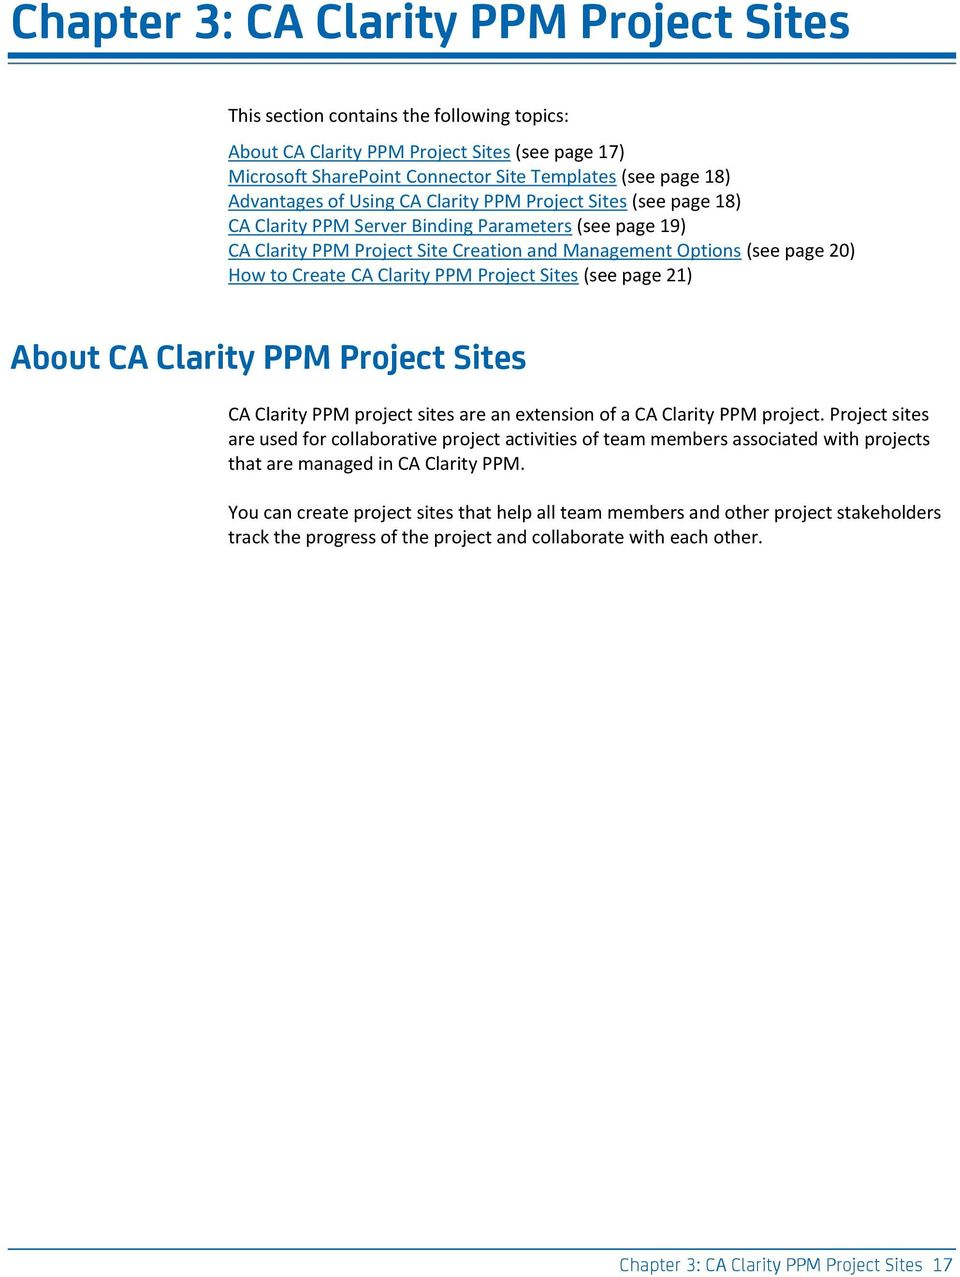 Create CA Clarity PPM Project Sites (see page 21) About CA Clarity PPM Project Sites CA Clarity PPM project sites are an extension of a CA Clarity PPM project.